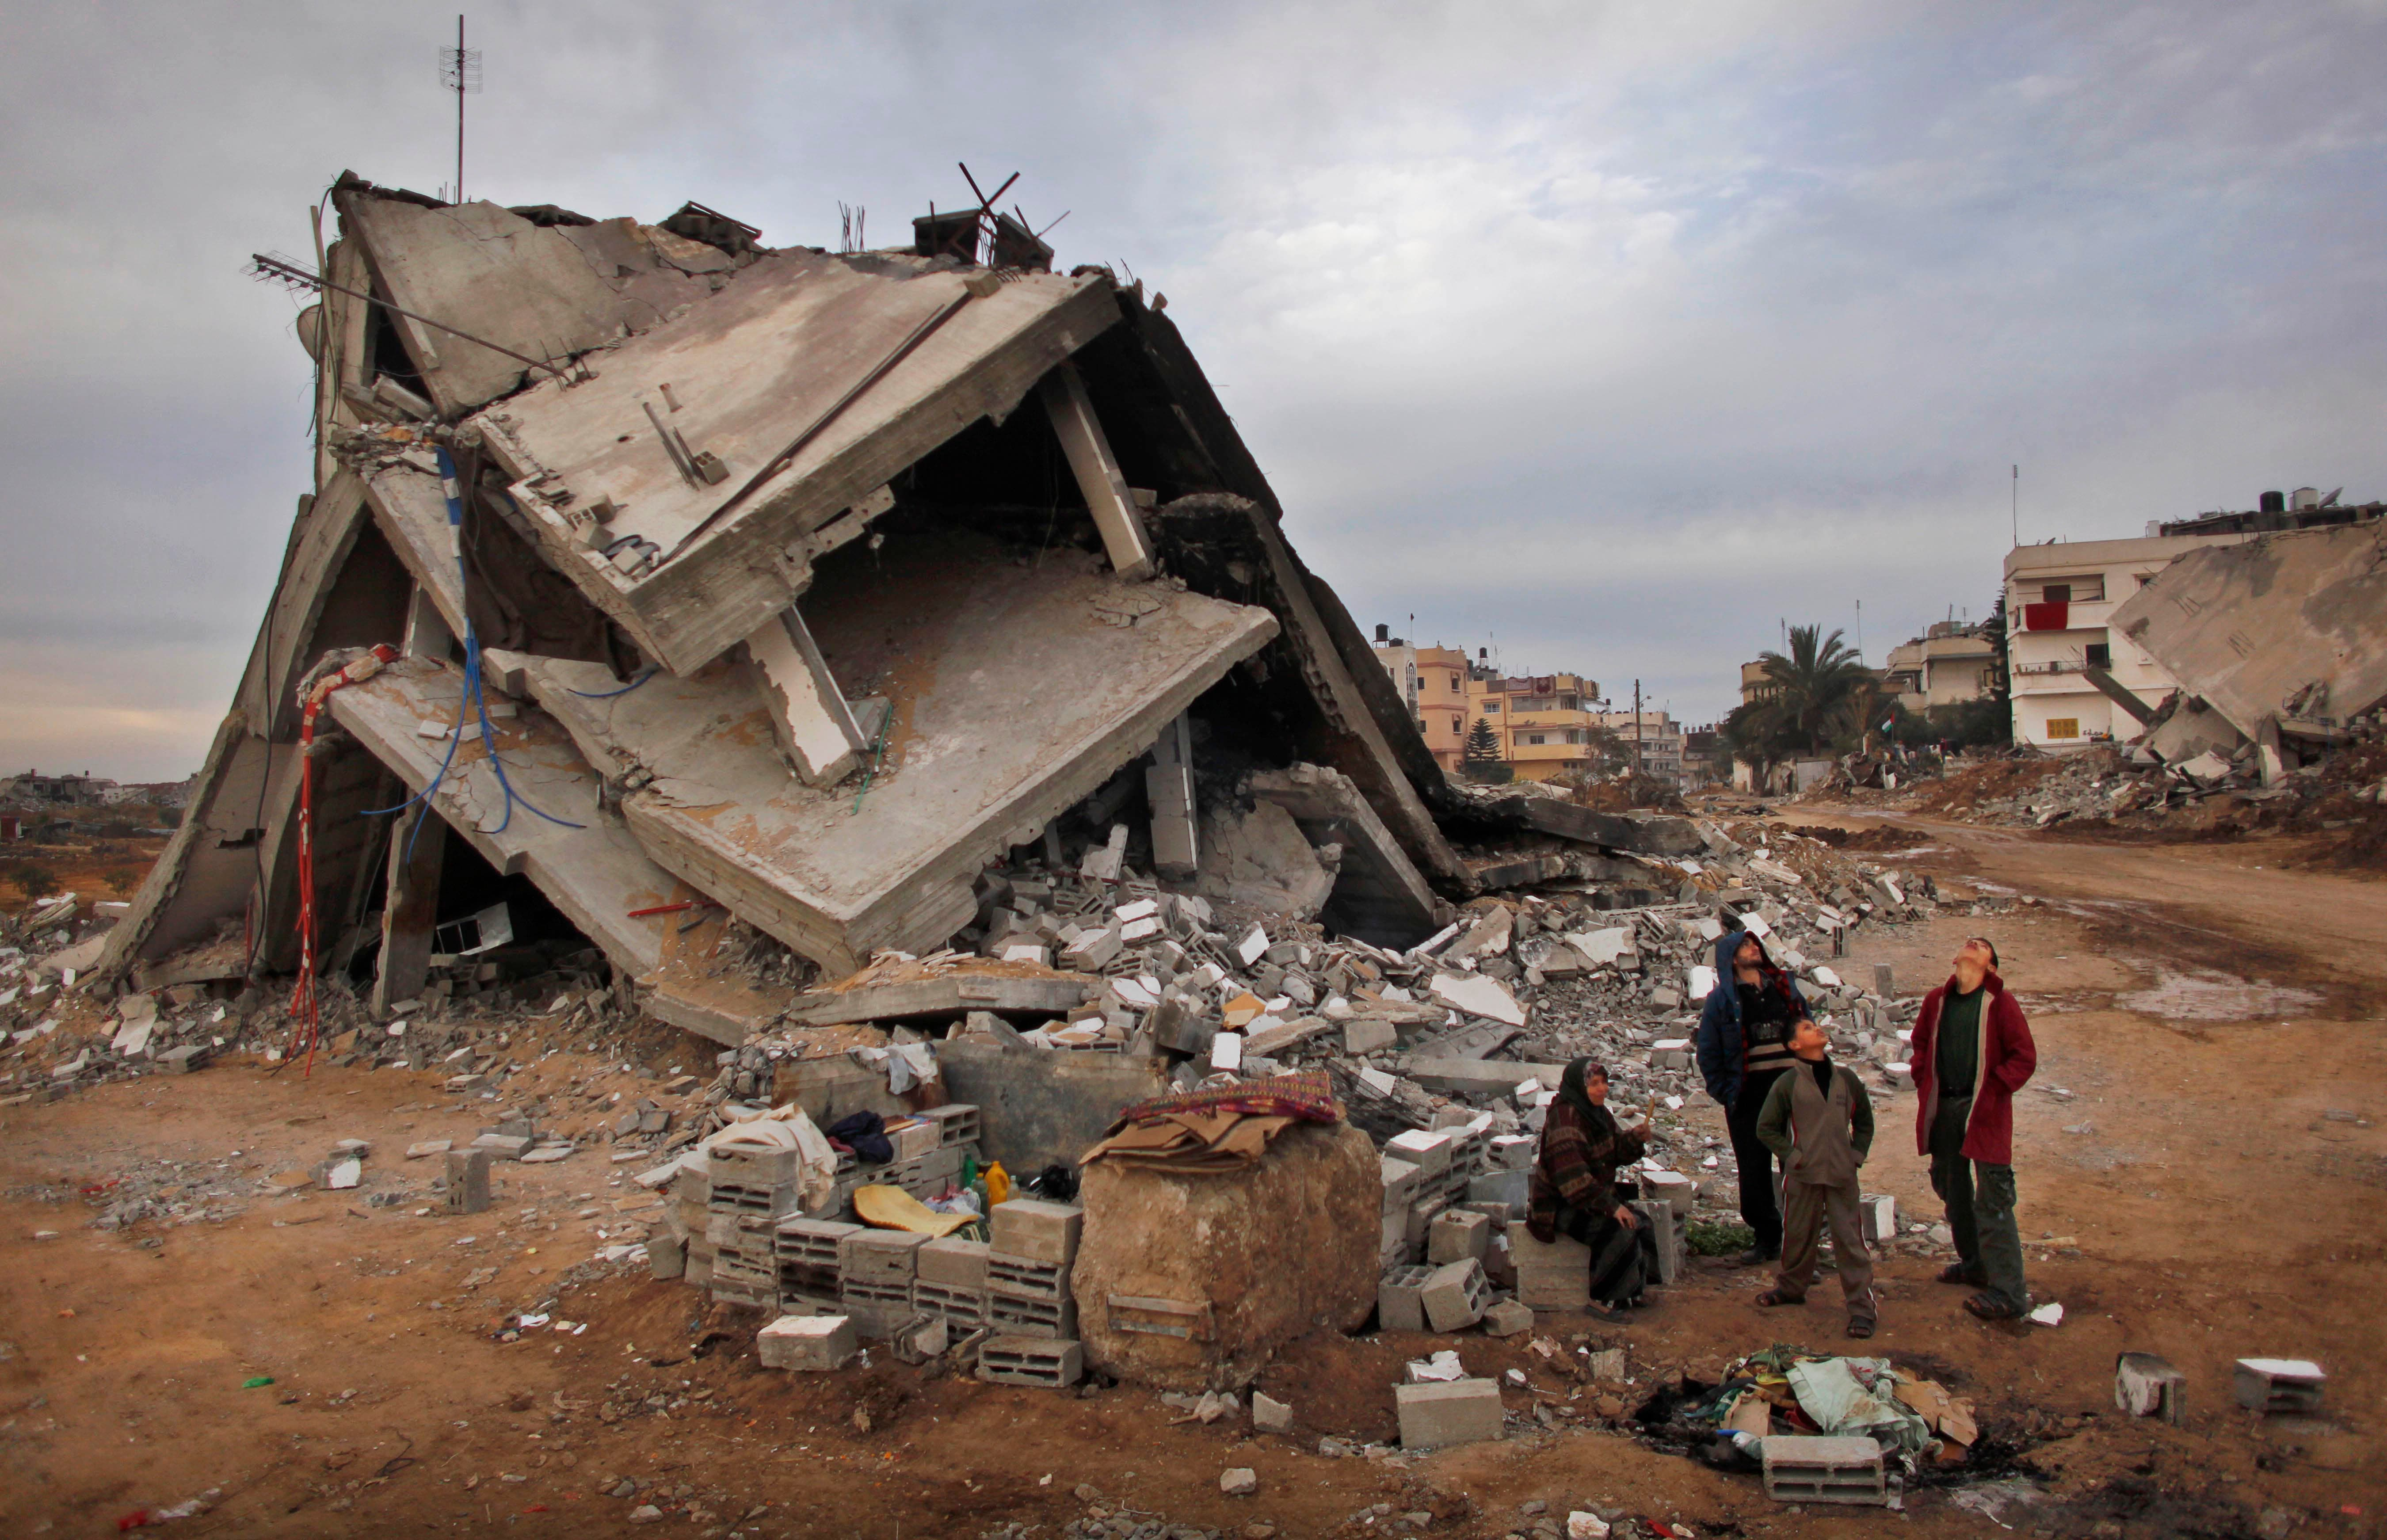 Palestinians look up at an Israeli air force unmanned drone as they stand in the rubble of their destroyed house in the area of east Jebaliya, in the northern Gaza Strip, that was devastated in the last Israeli military offensive, Wednesday, Jan. 28, 2009. (Reuters)